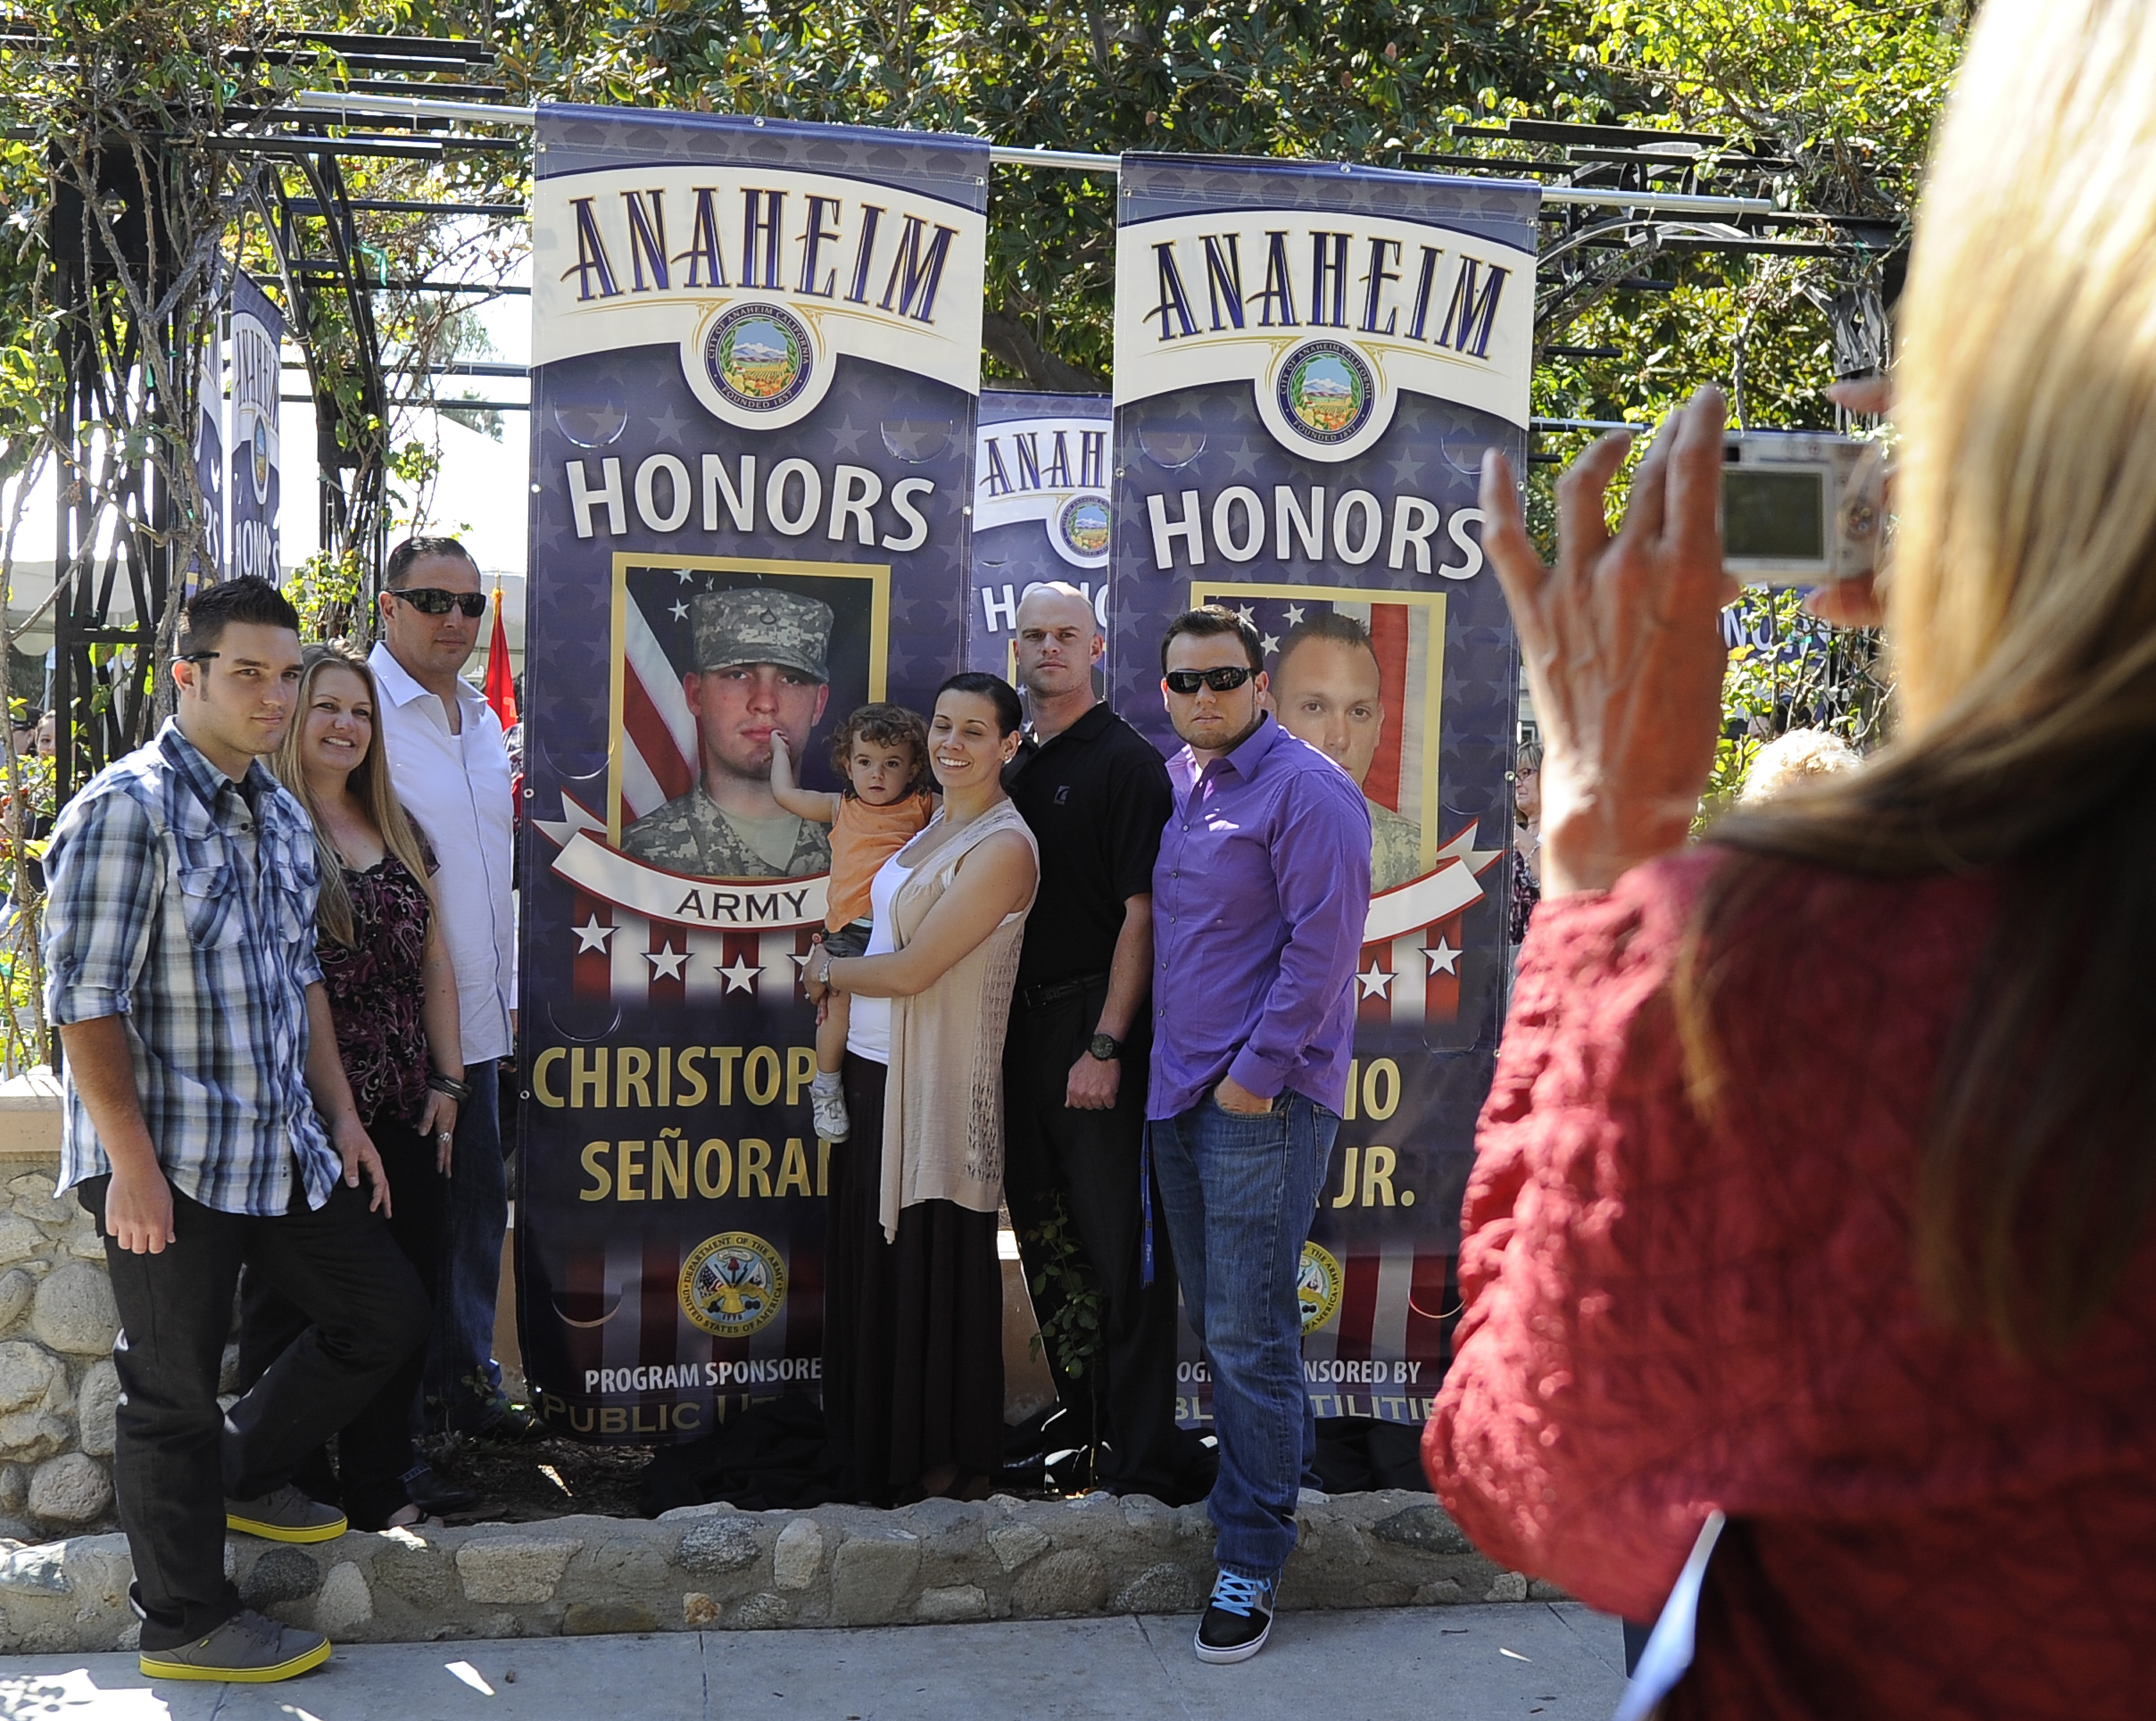 Banner Ceremony - September 25, 2012